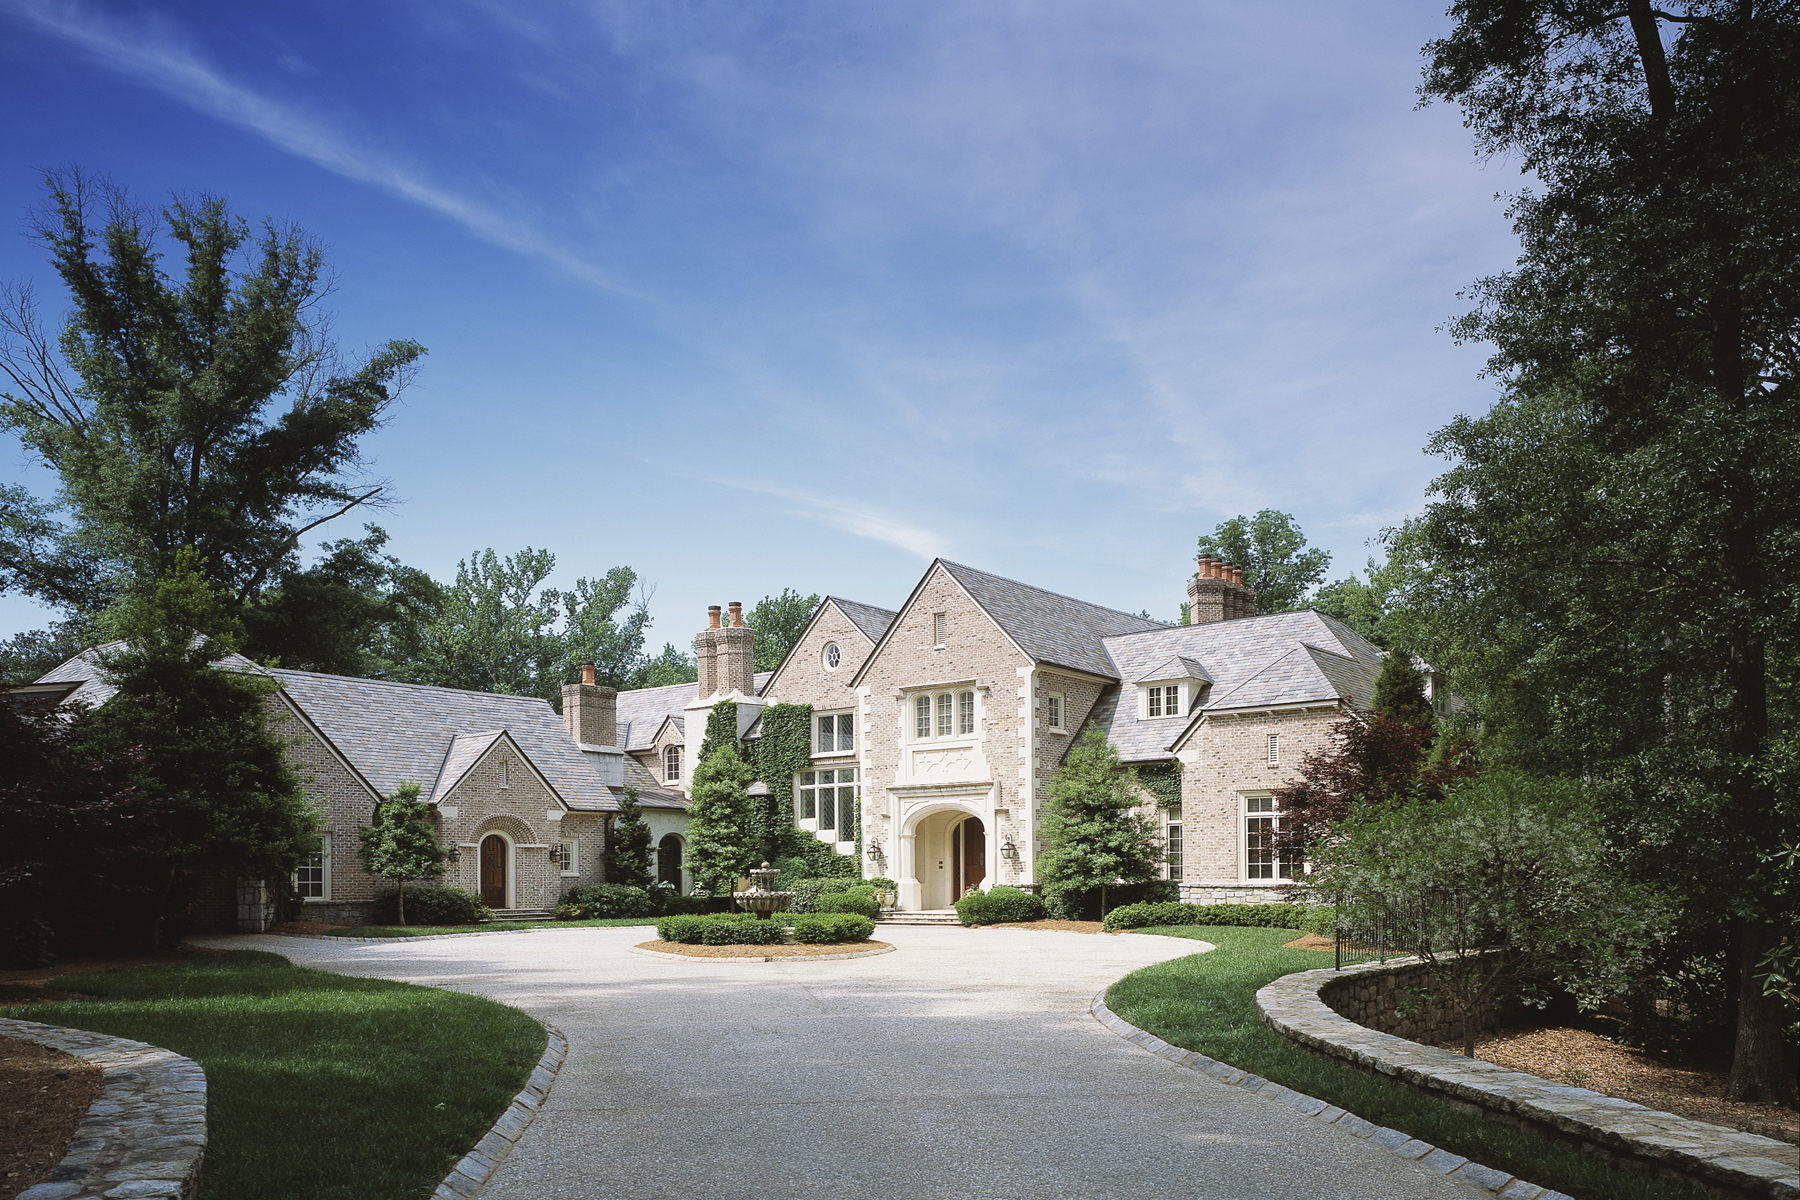 Single Family Home for Active at An Award Winning Tudor In Buckhead 2032 W Paces Ferry Road Atlanta, Georgia 30327 United States